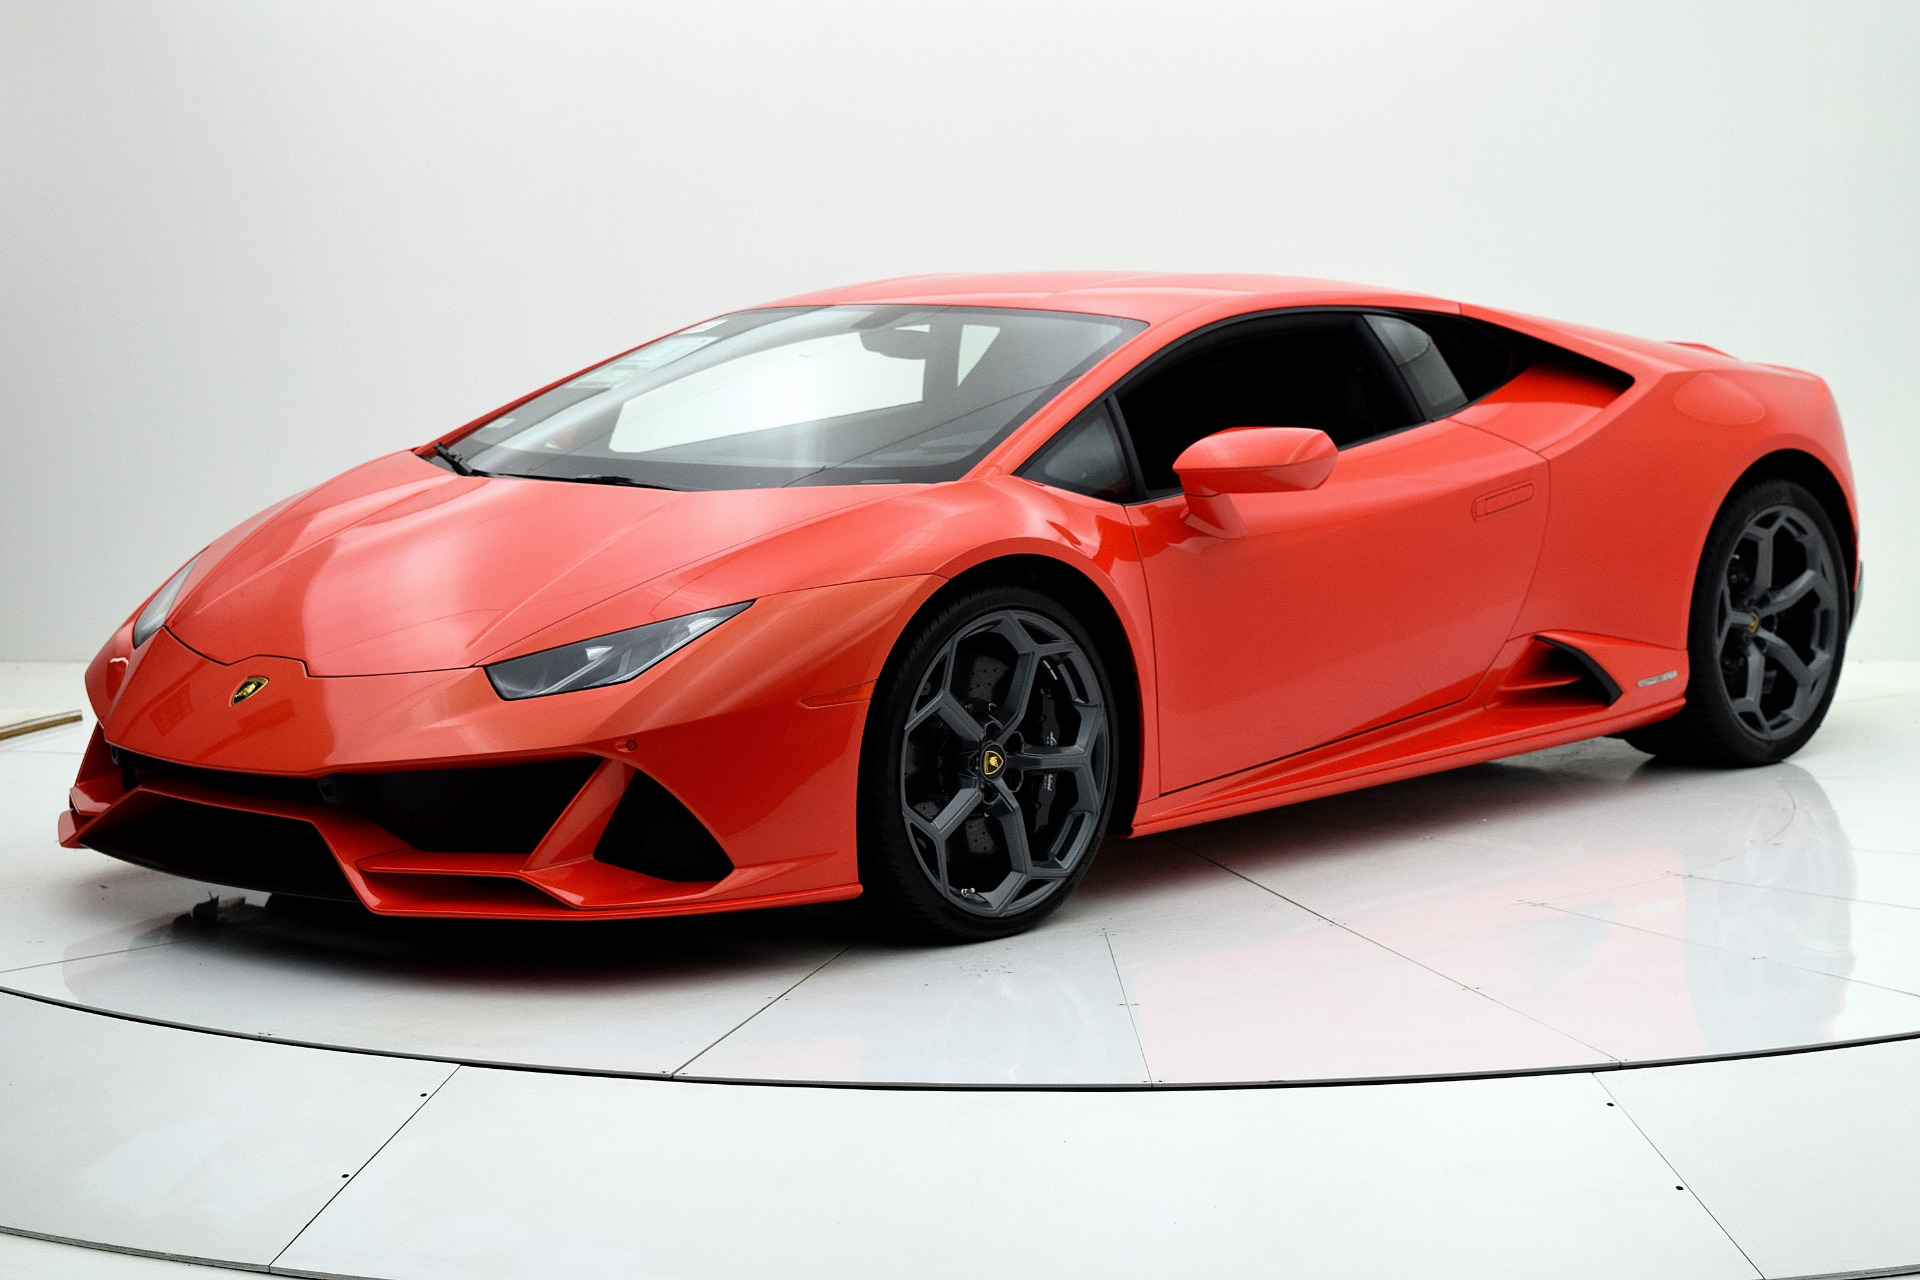 New 2020 Lamborghini Huracan Evo For Sale 313 019 F C